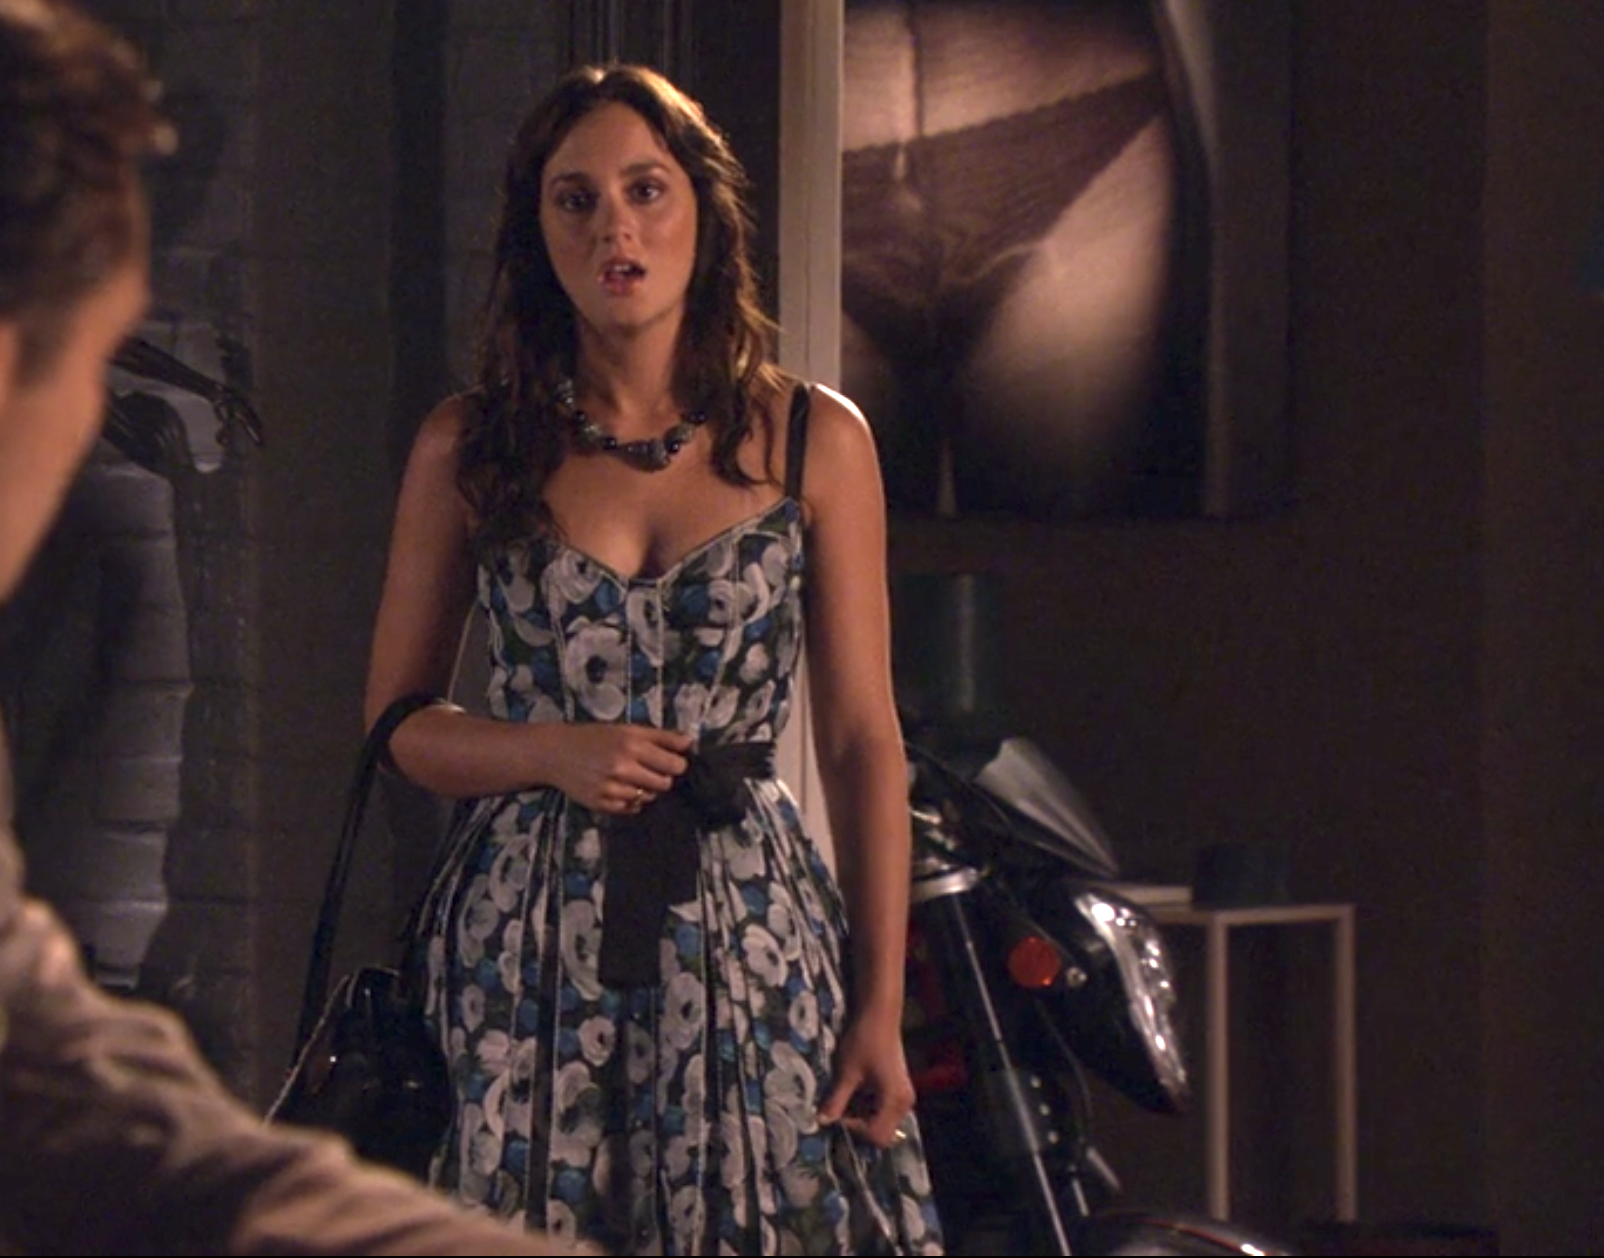 Blair in a sweetheart neckline tank floral pattern dress with a flare skirt and corset top and a tie at the waist